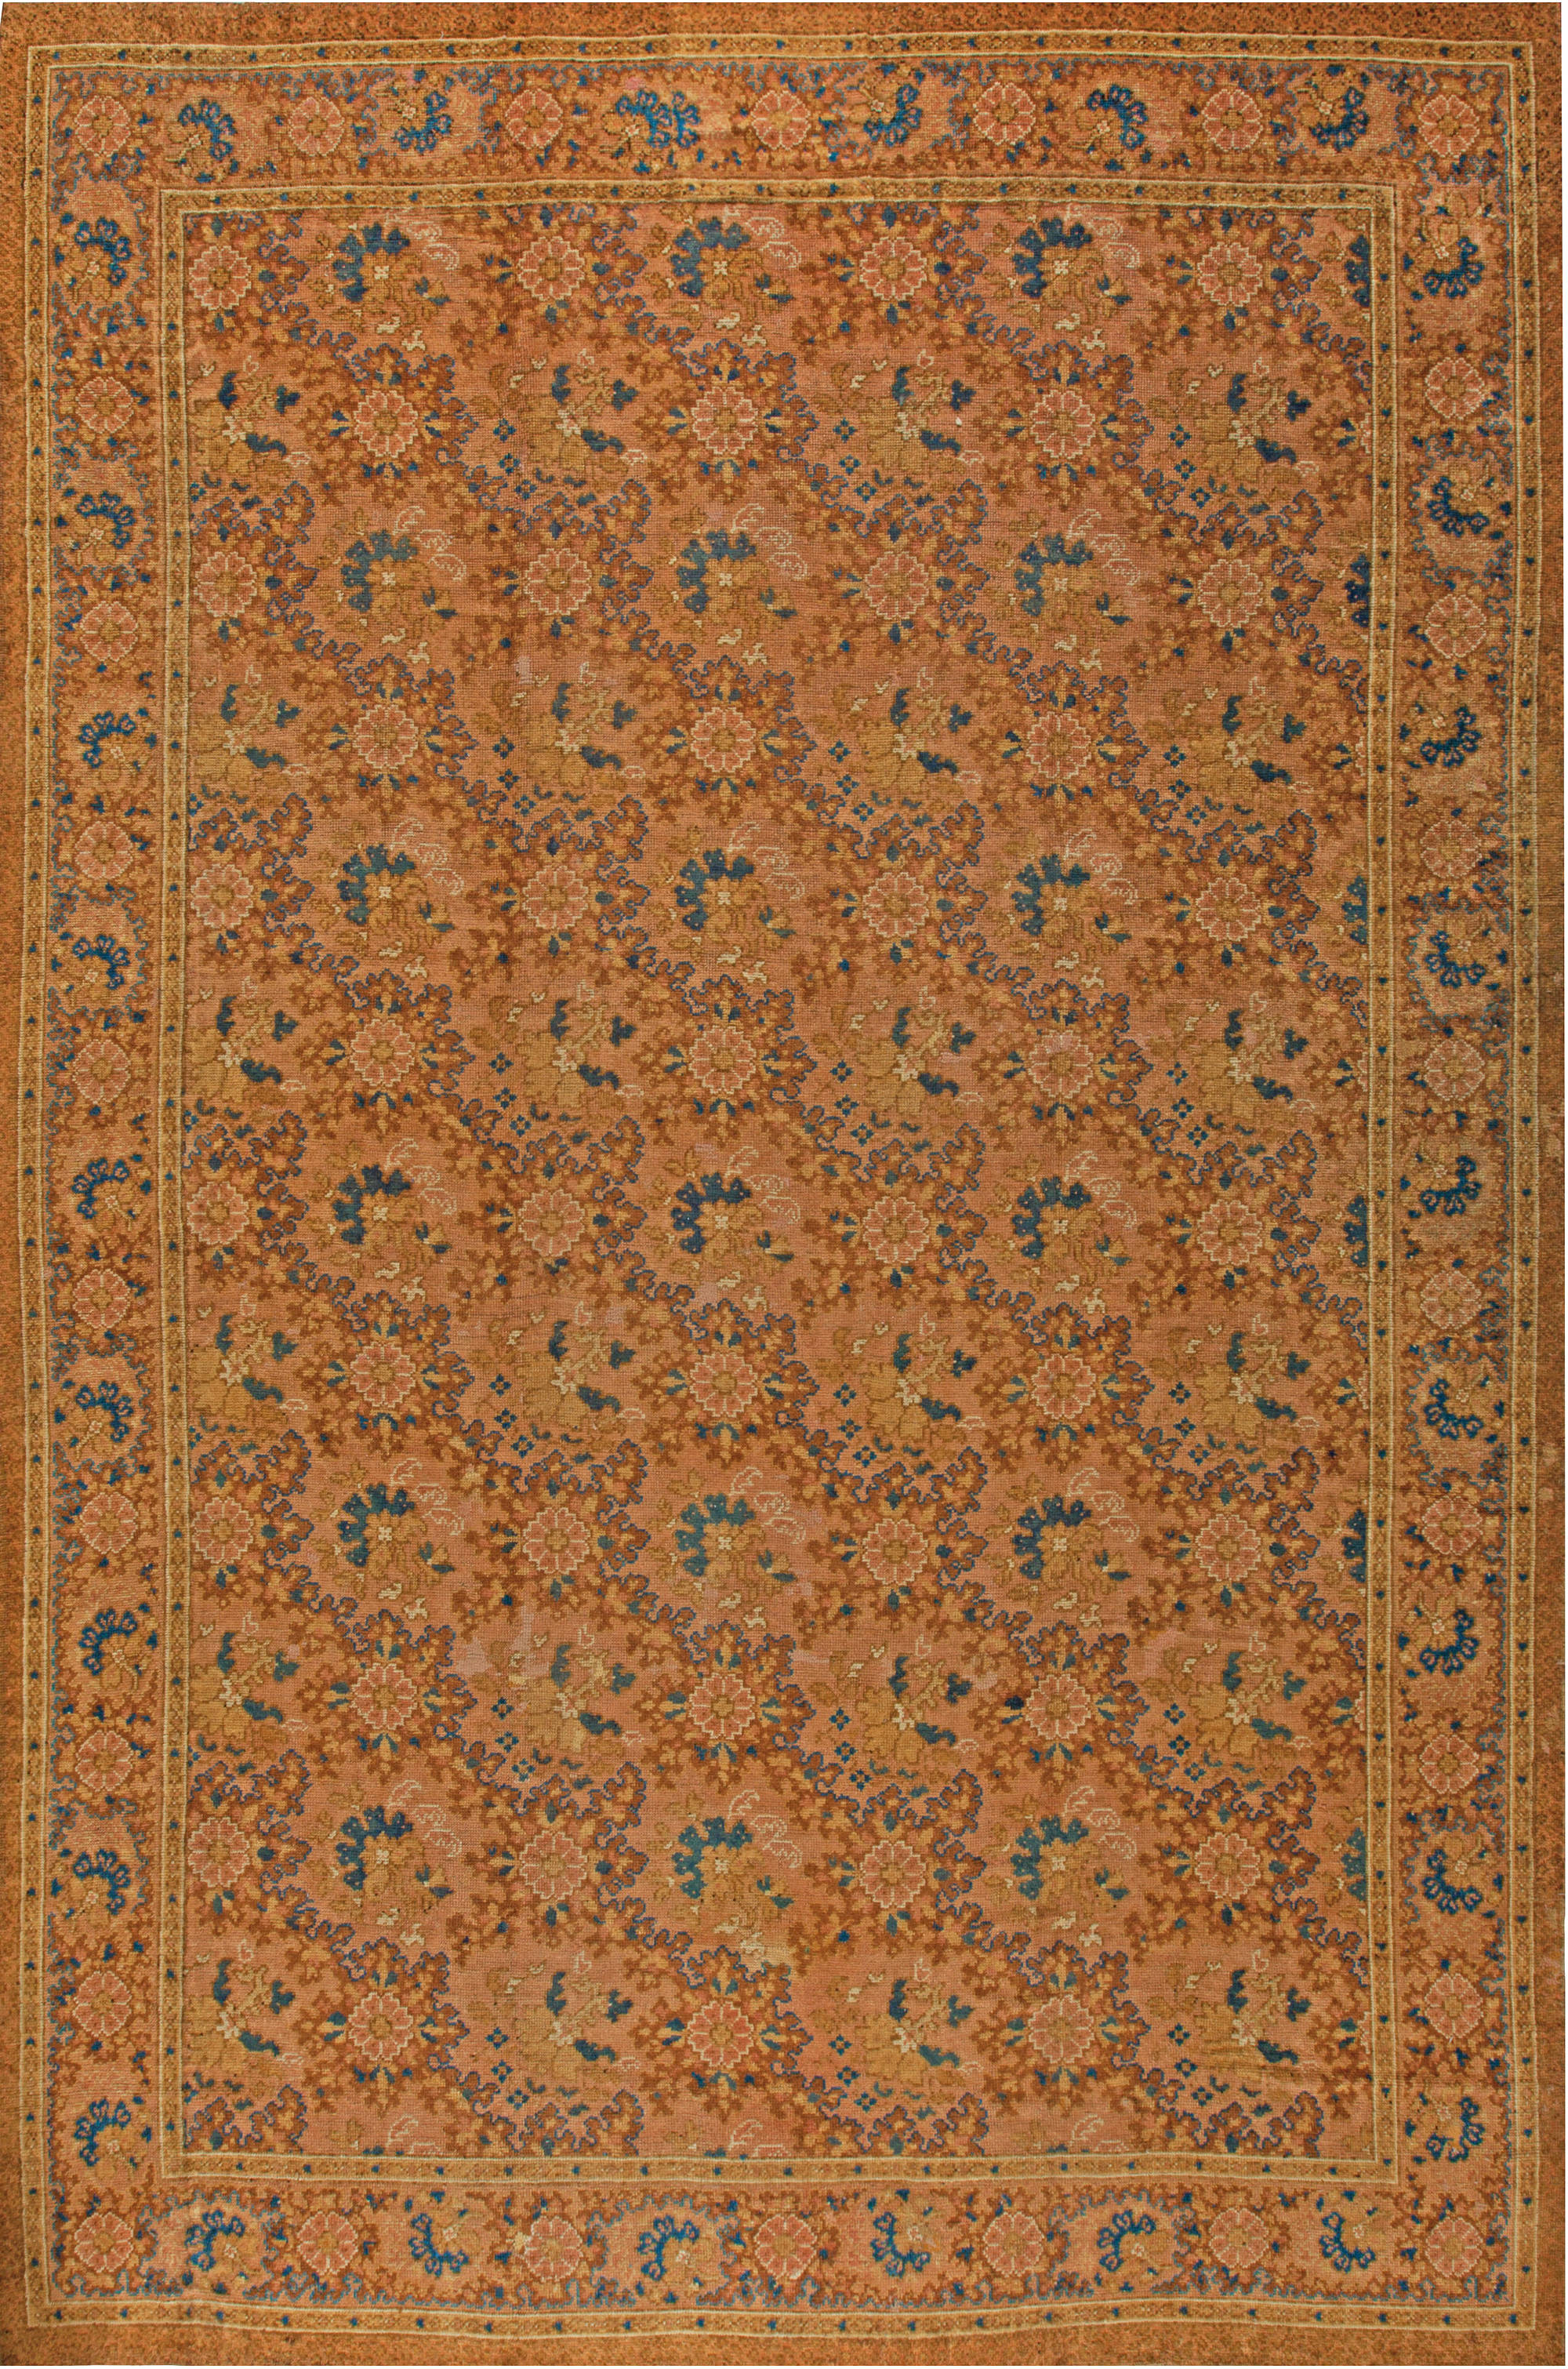 Antique English Axminster Carpet Bb6809 By Dlb